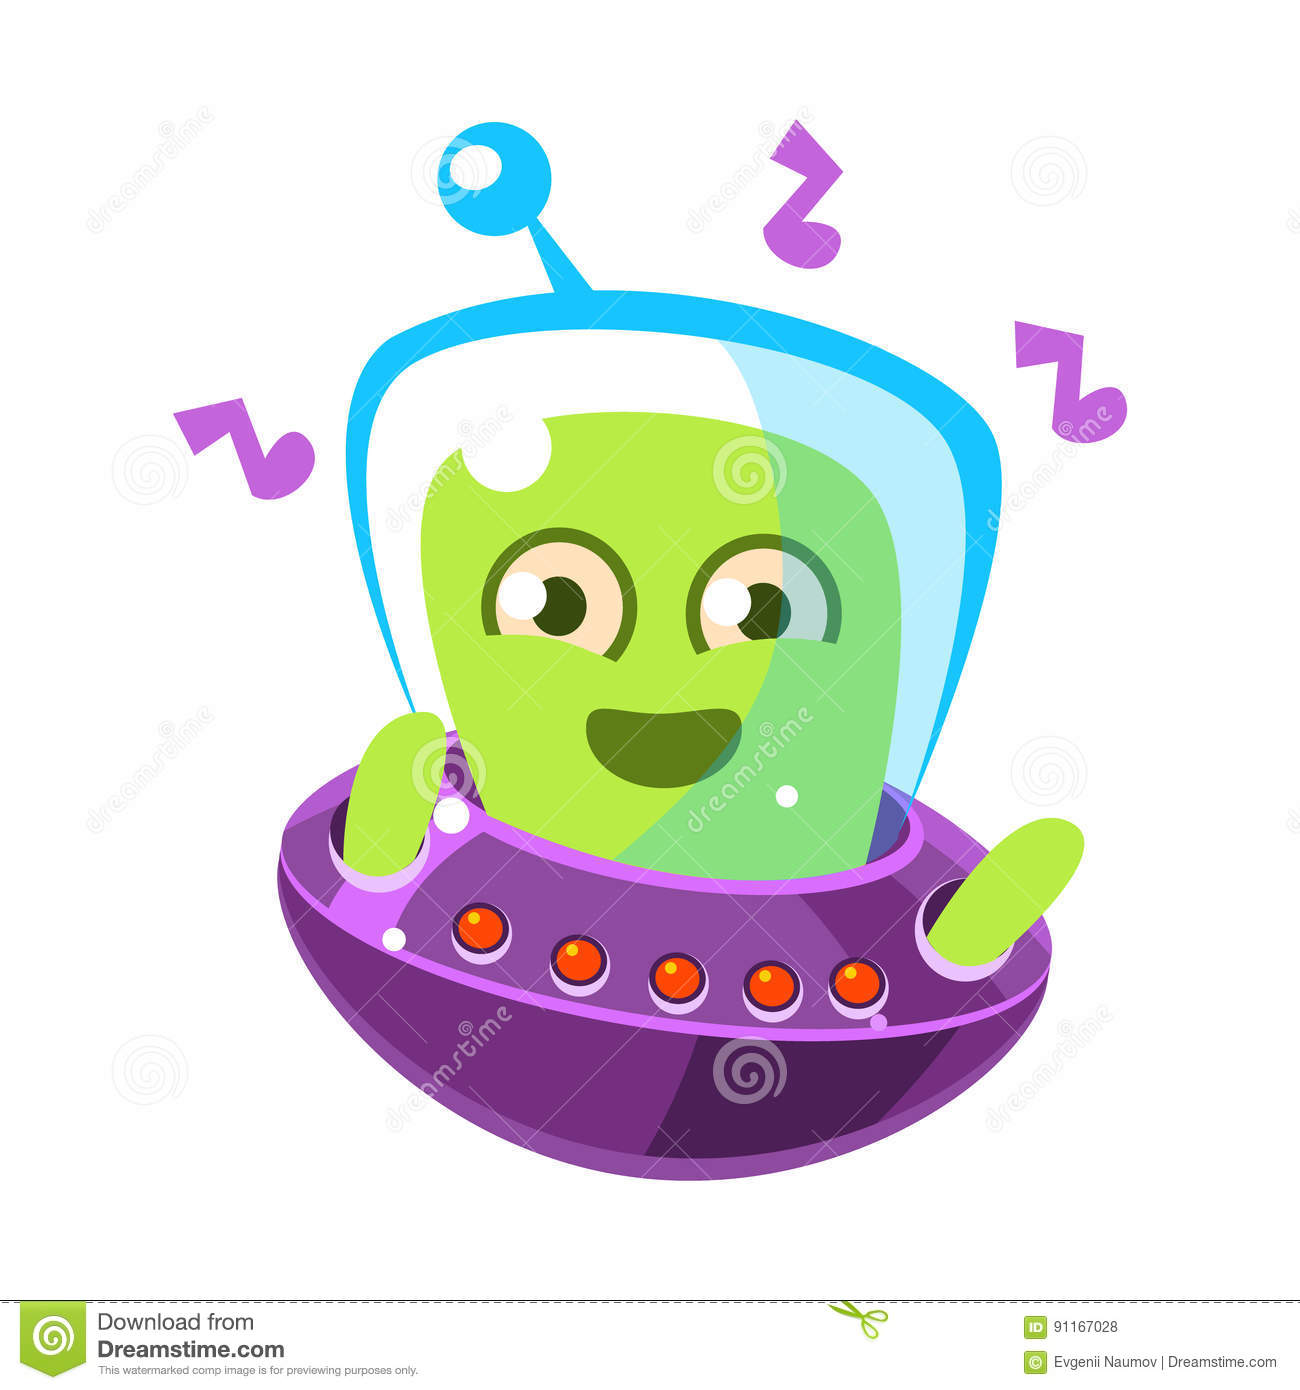 dancing alien in a flying saucer cute cartoon monster colorful